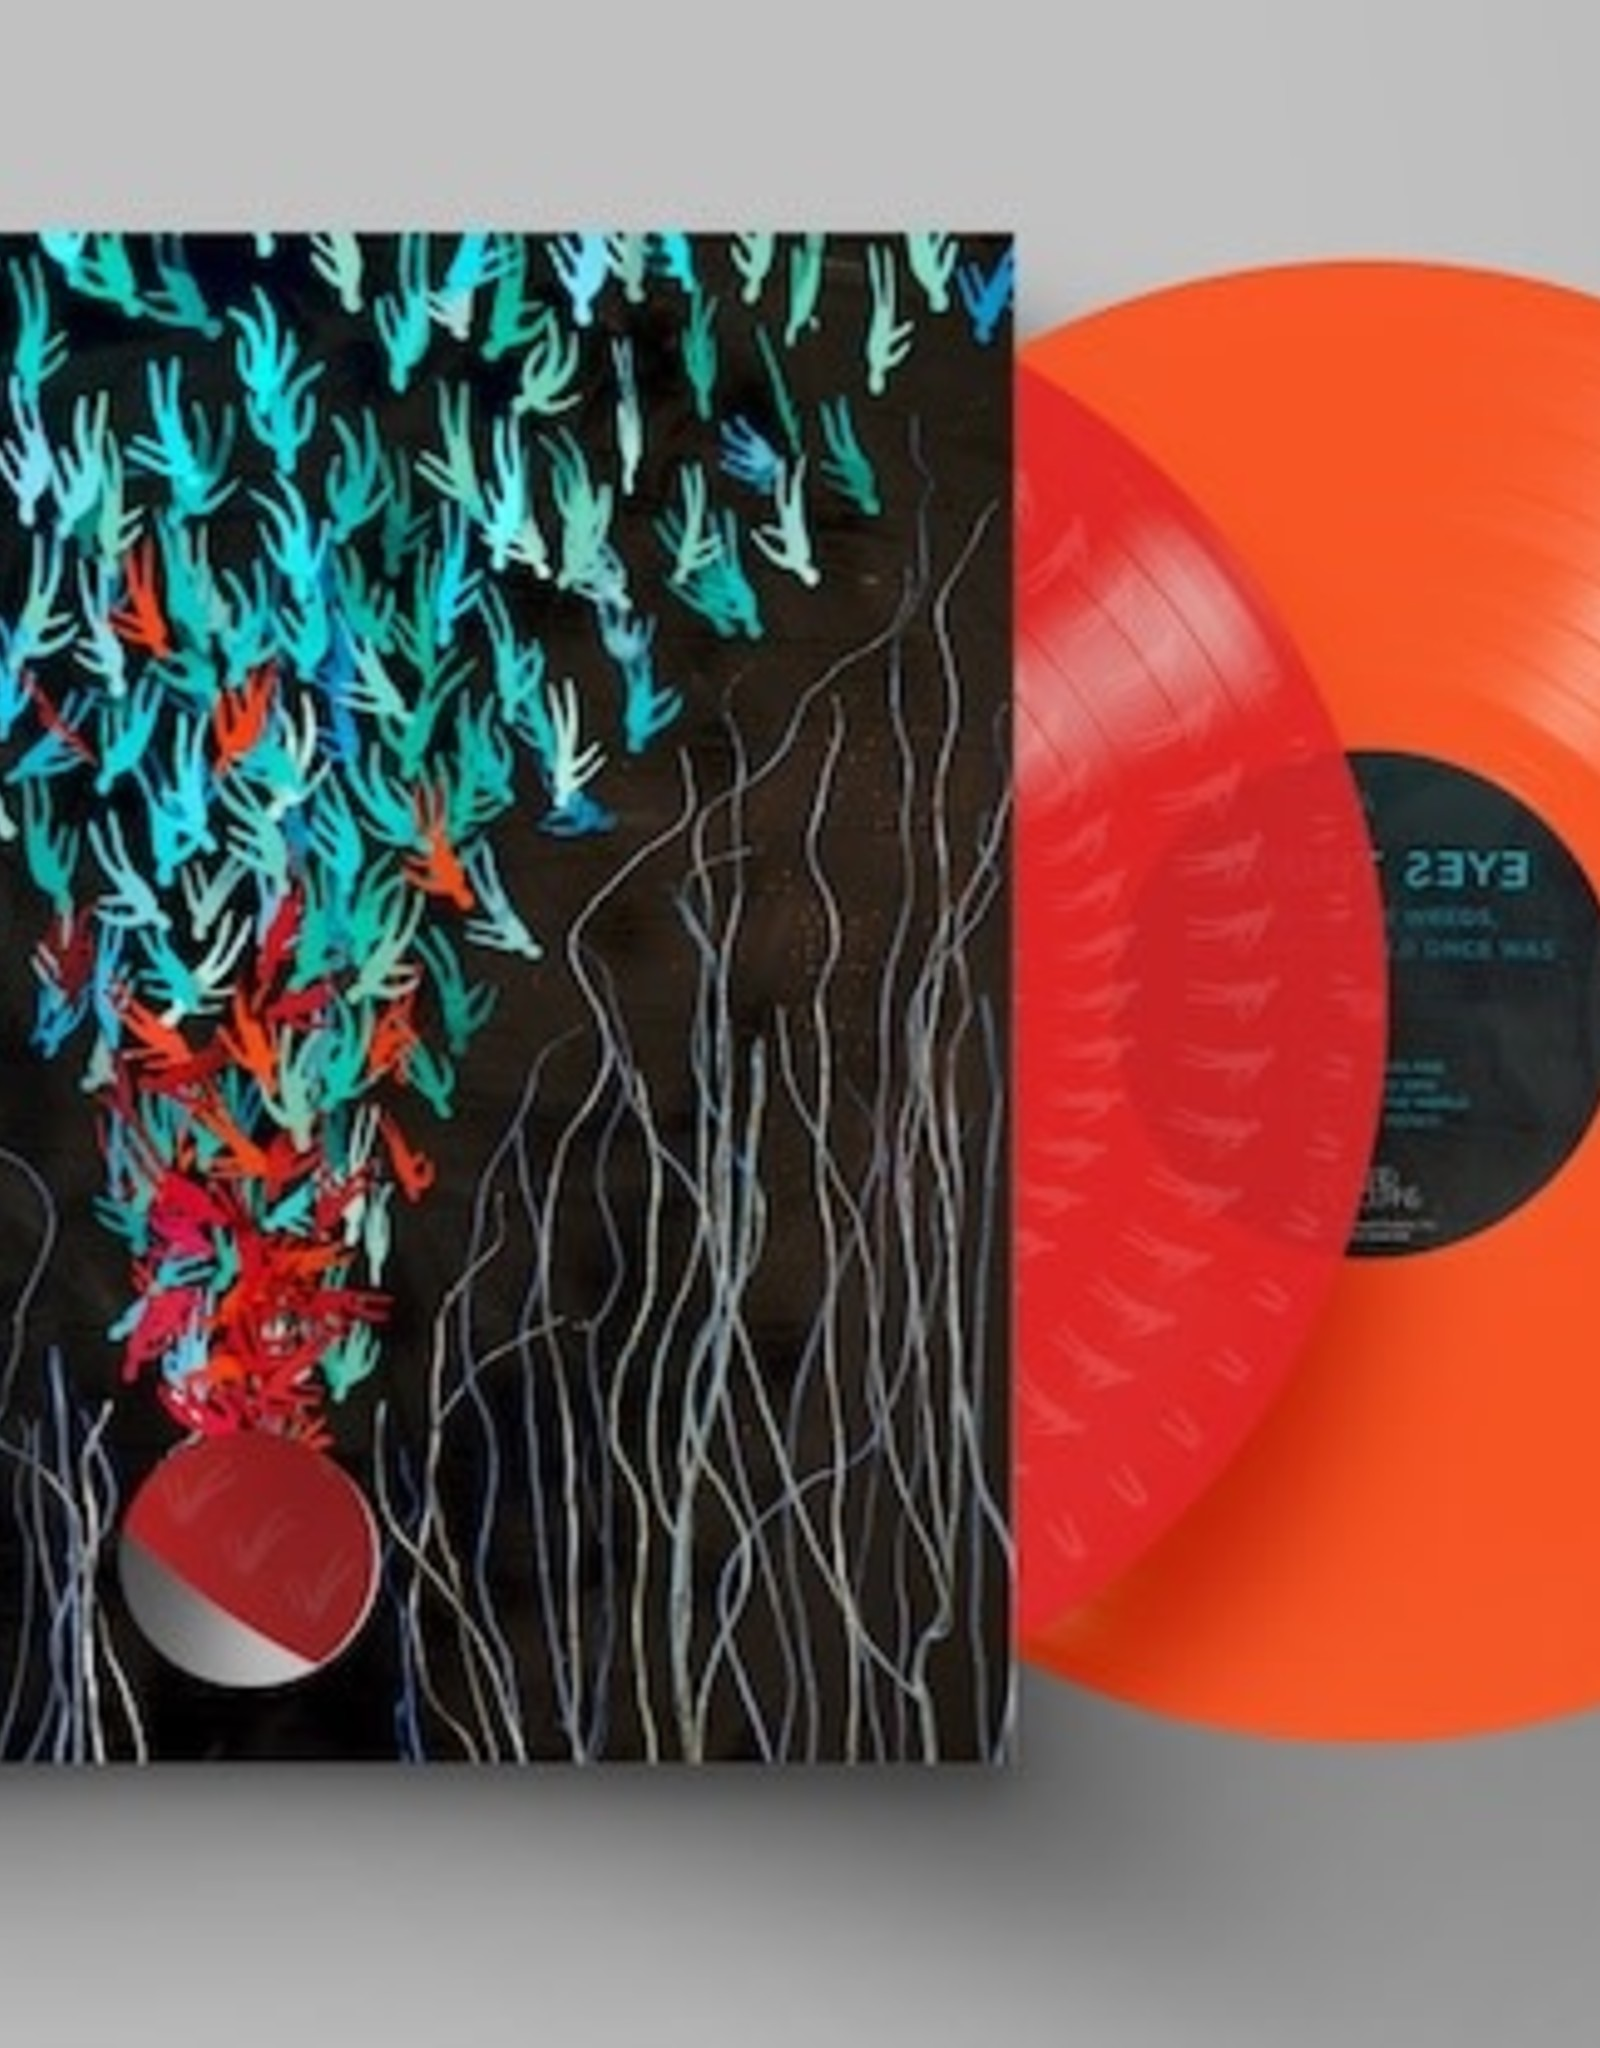 Bright Eyes - Down in the Weeds, Where the World Once Was (Retail Exclusive)-  (Transparent Red / Transparent Orange 2x Vinyl LP)